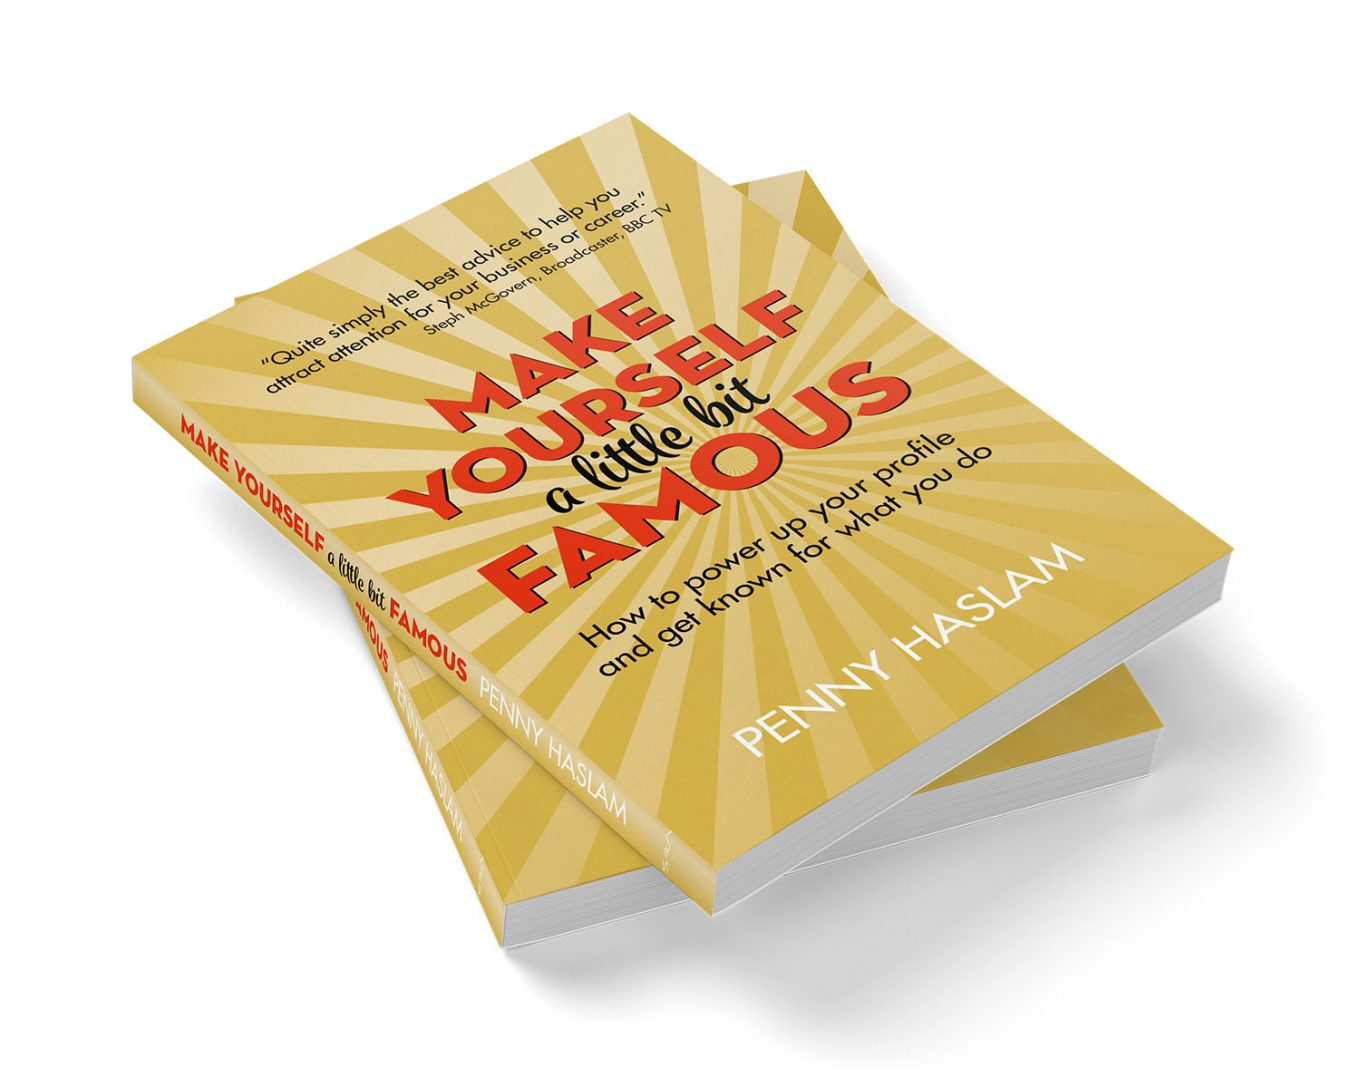 Make Yourself a Little Bit Famous - By Penny Haslam